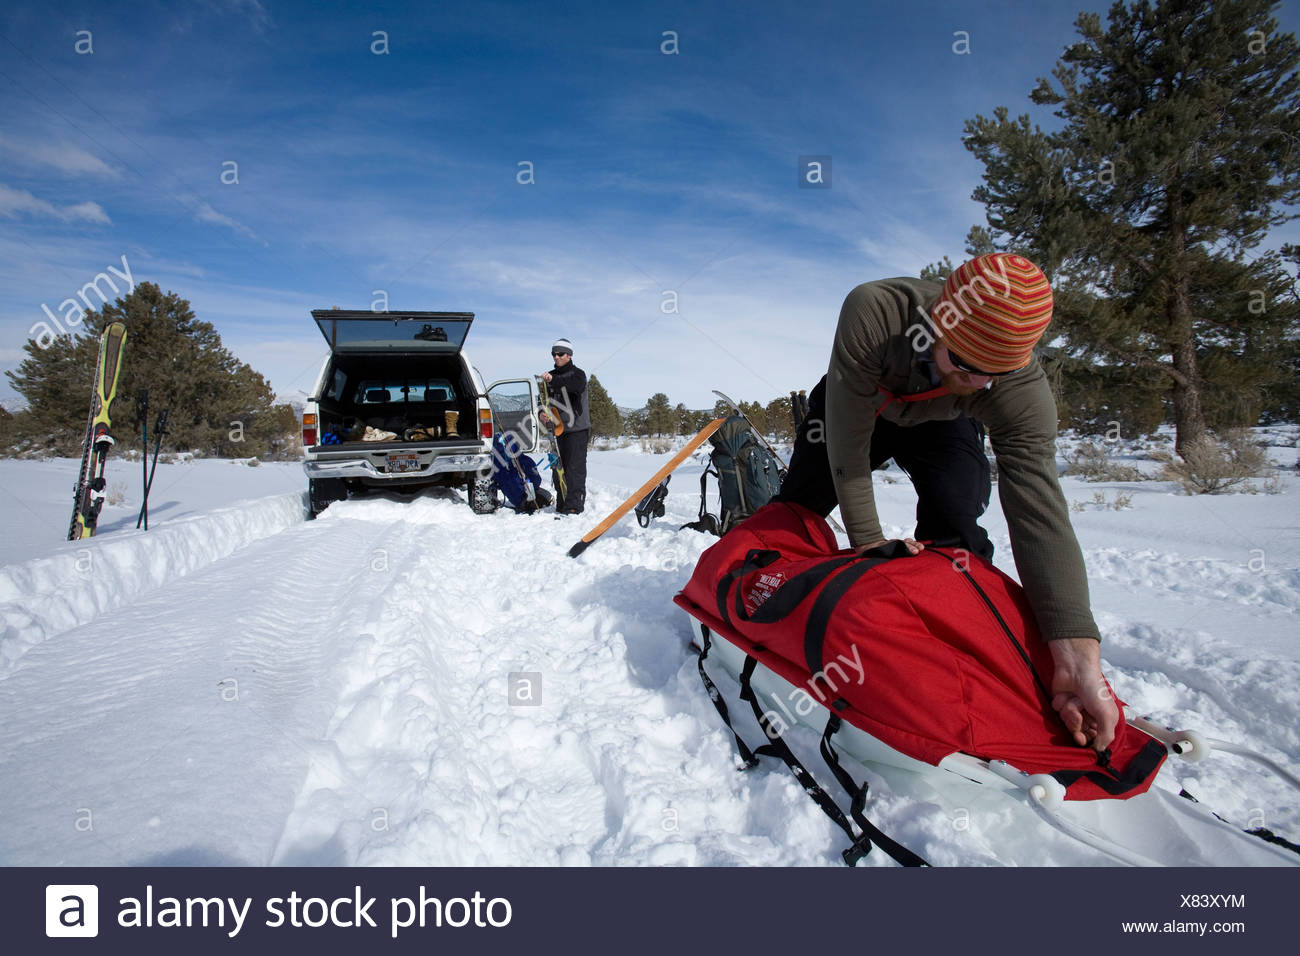 Low angle perspective of a skier zipping up his gear sled while another skier gets ready for hike into a backcountry cabin. - Stock Image